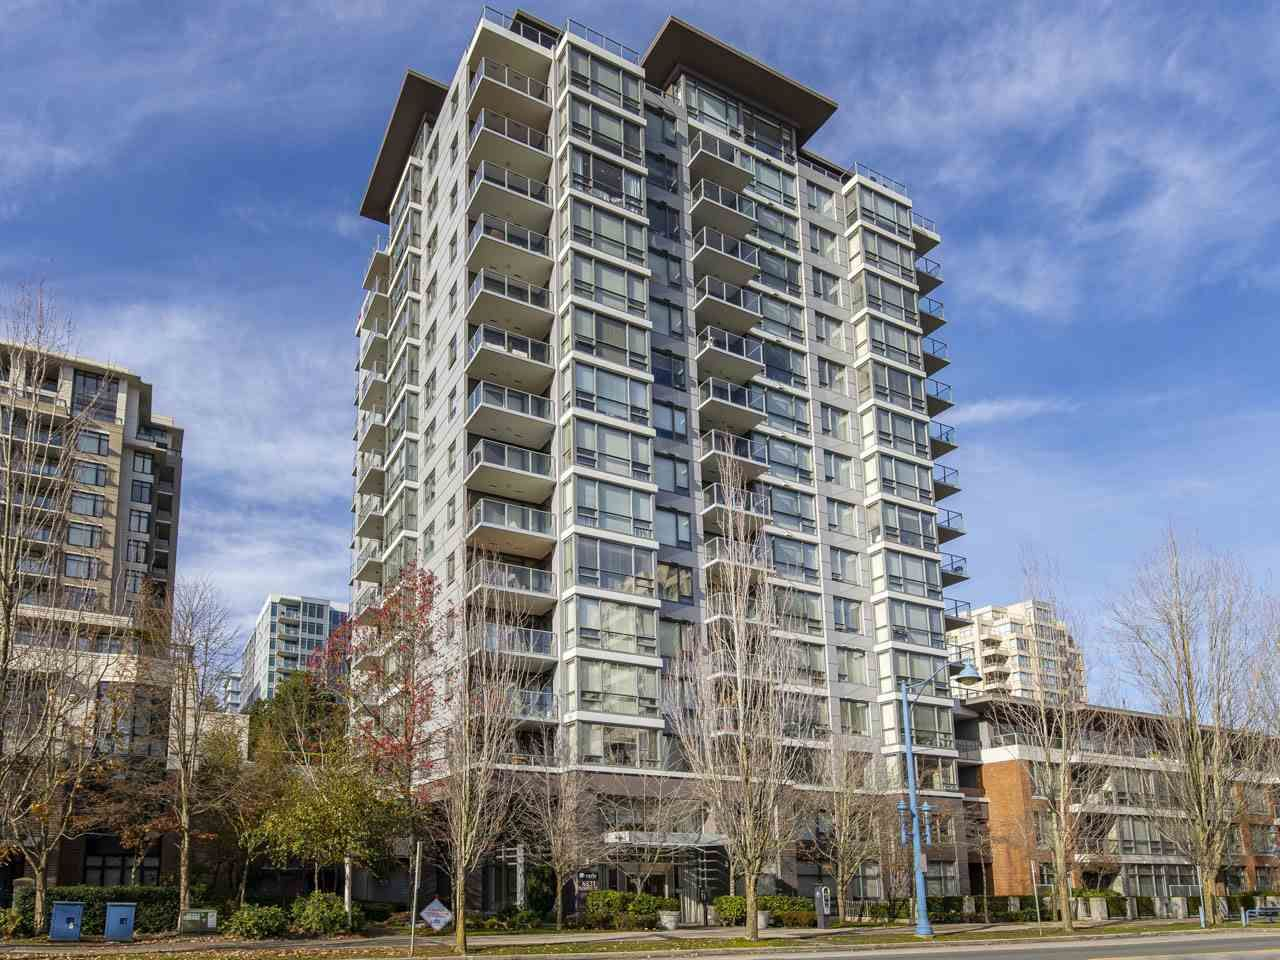 Main Photo: 608 6331 BUSWELL STREET in Richmond: Brighouse Condo for sale : MLS®# R2428947